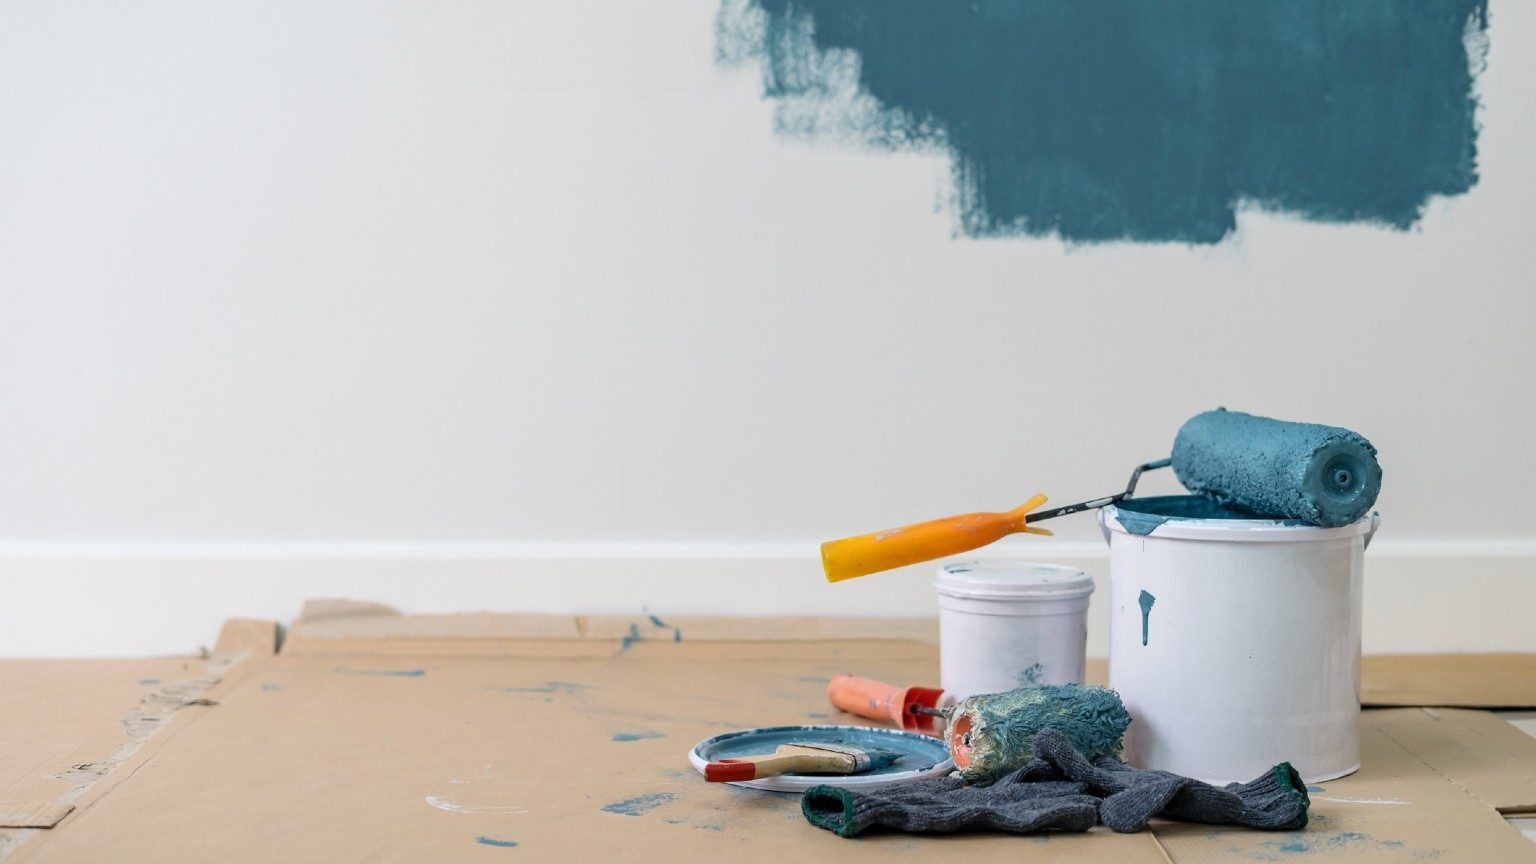 house painting equipment